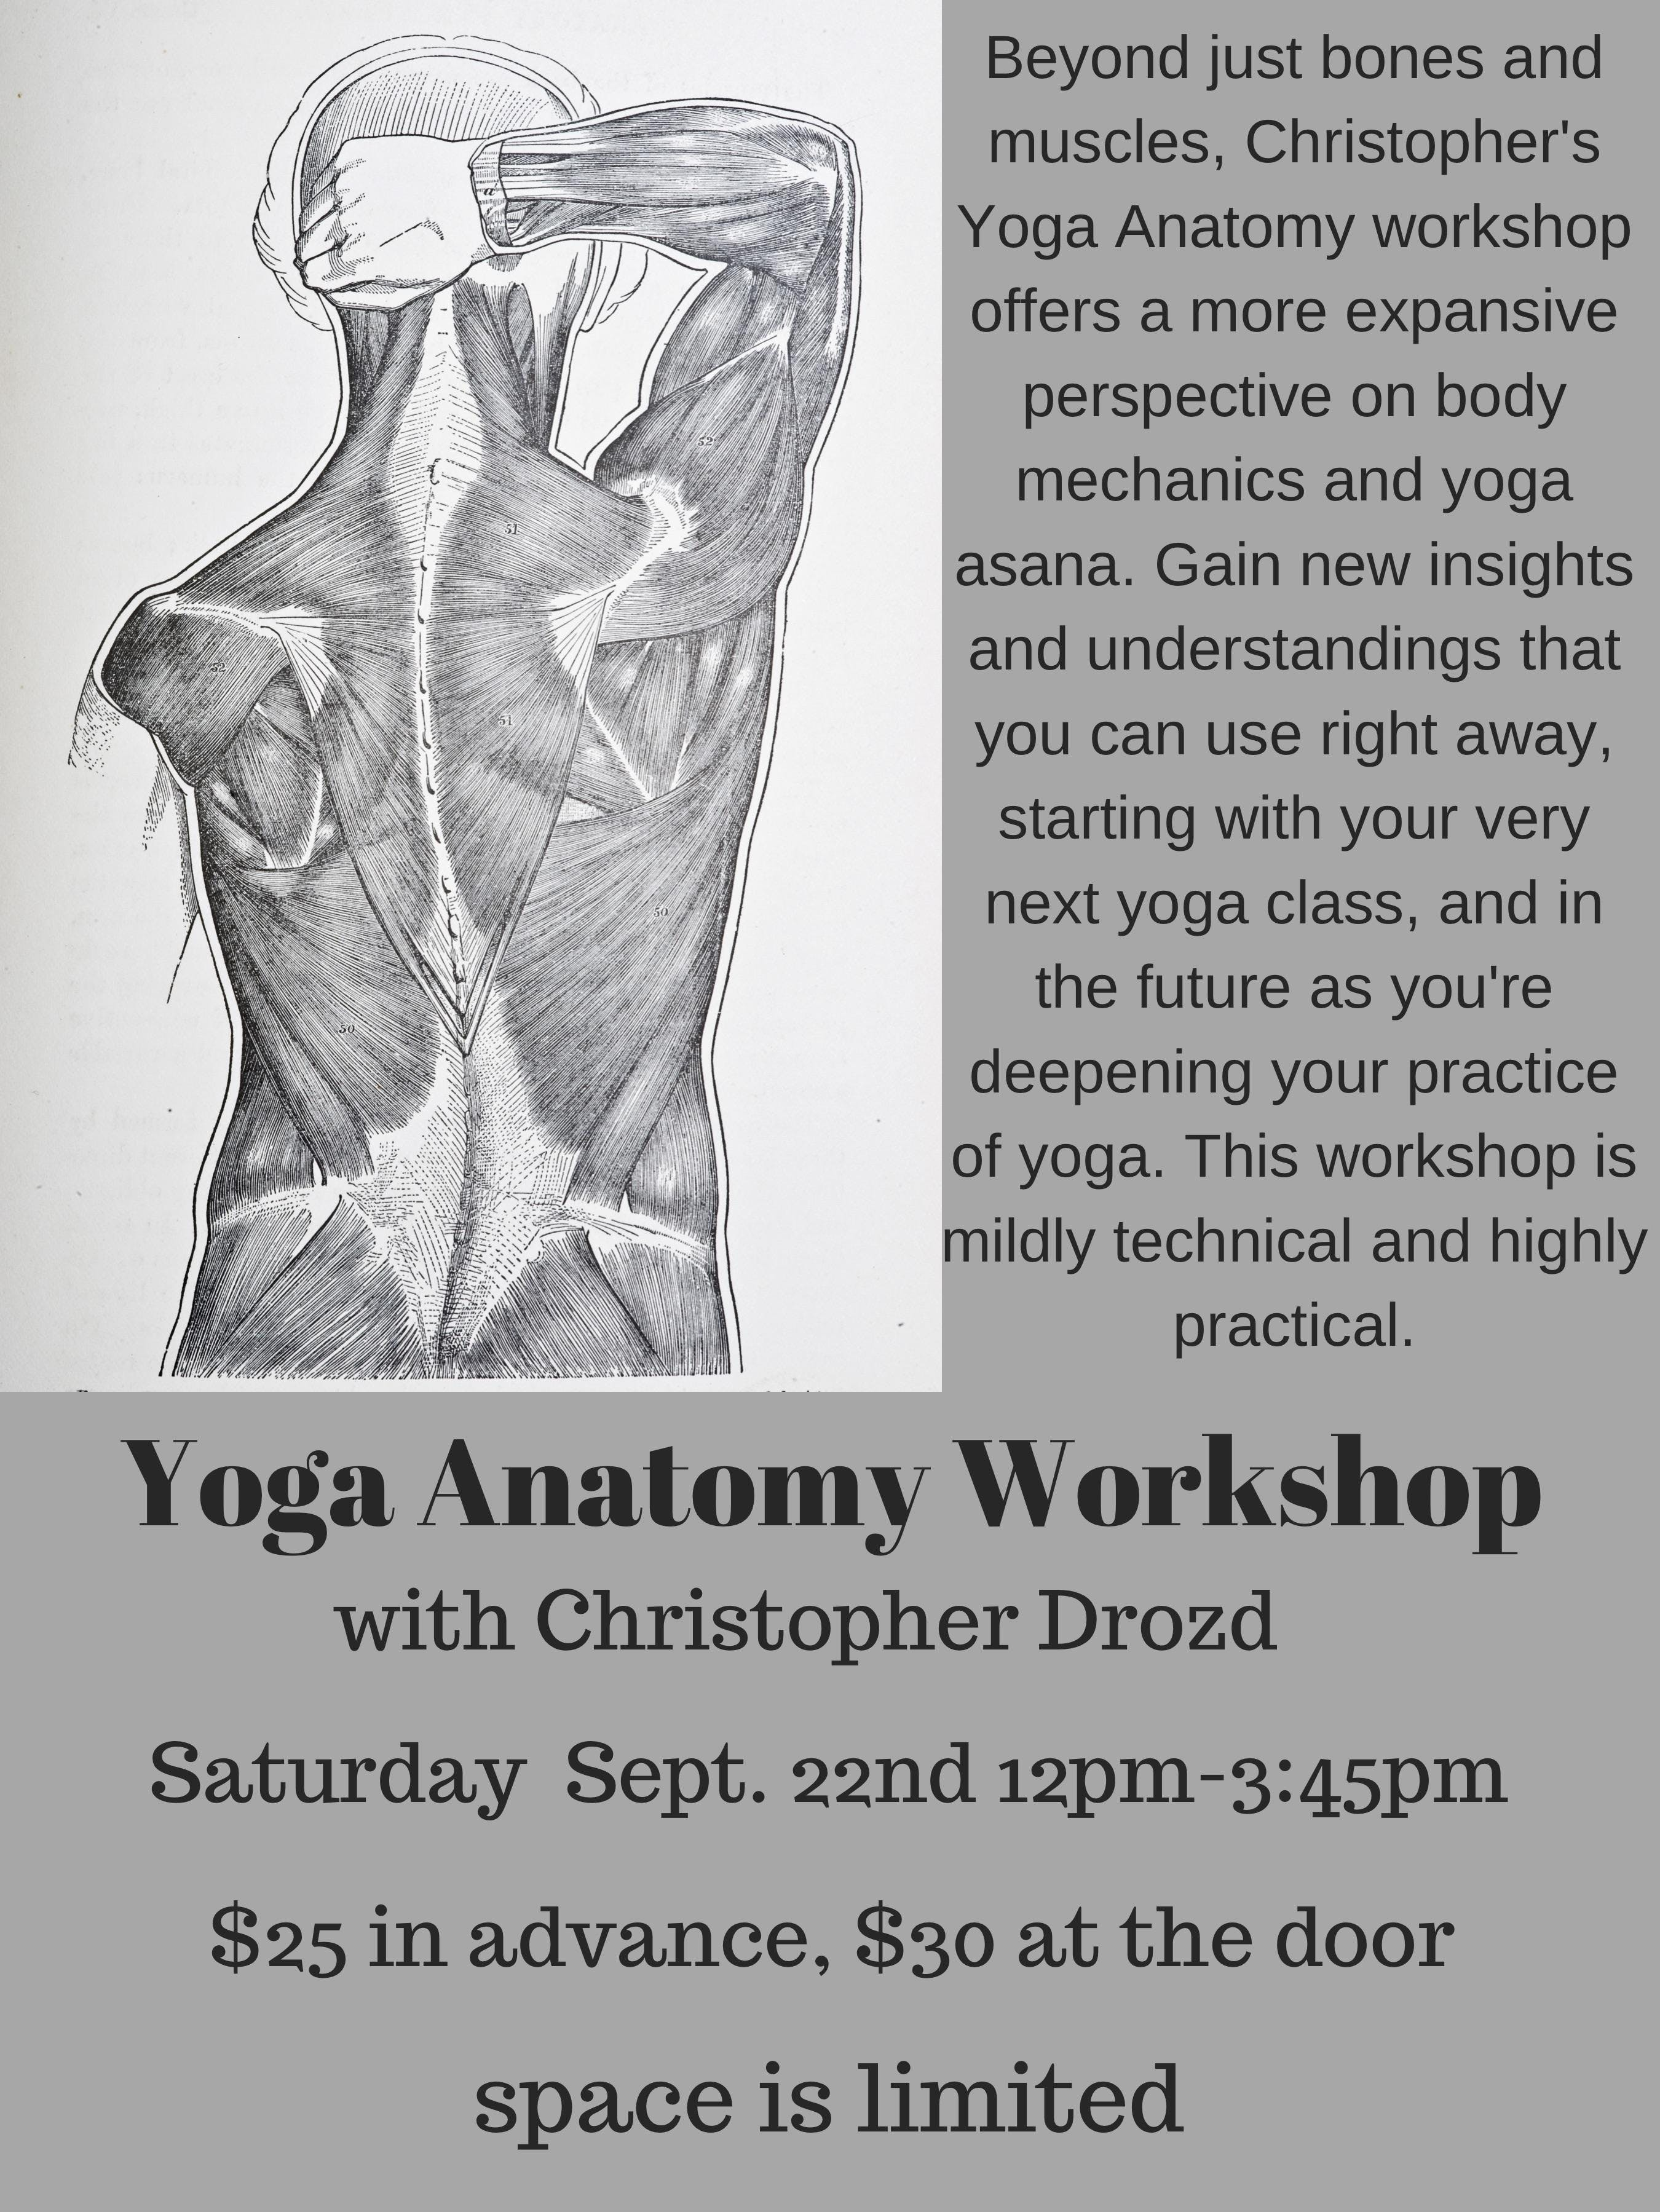 Yoga Anatomy Workshop with Christopher Drozd - 22 SEP 2018